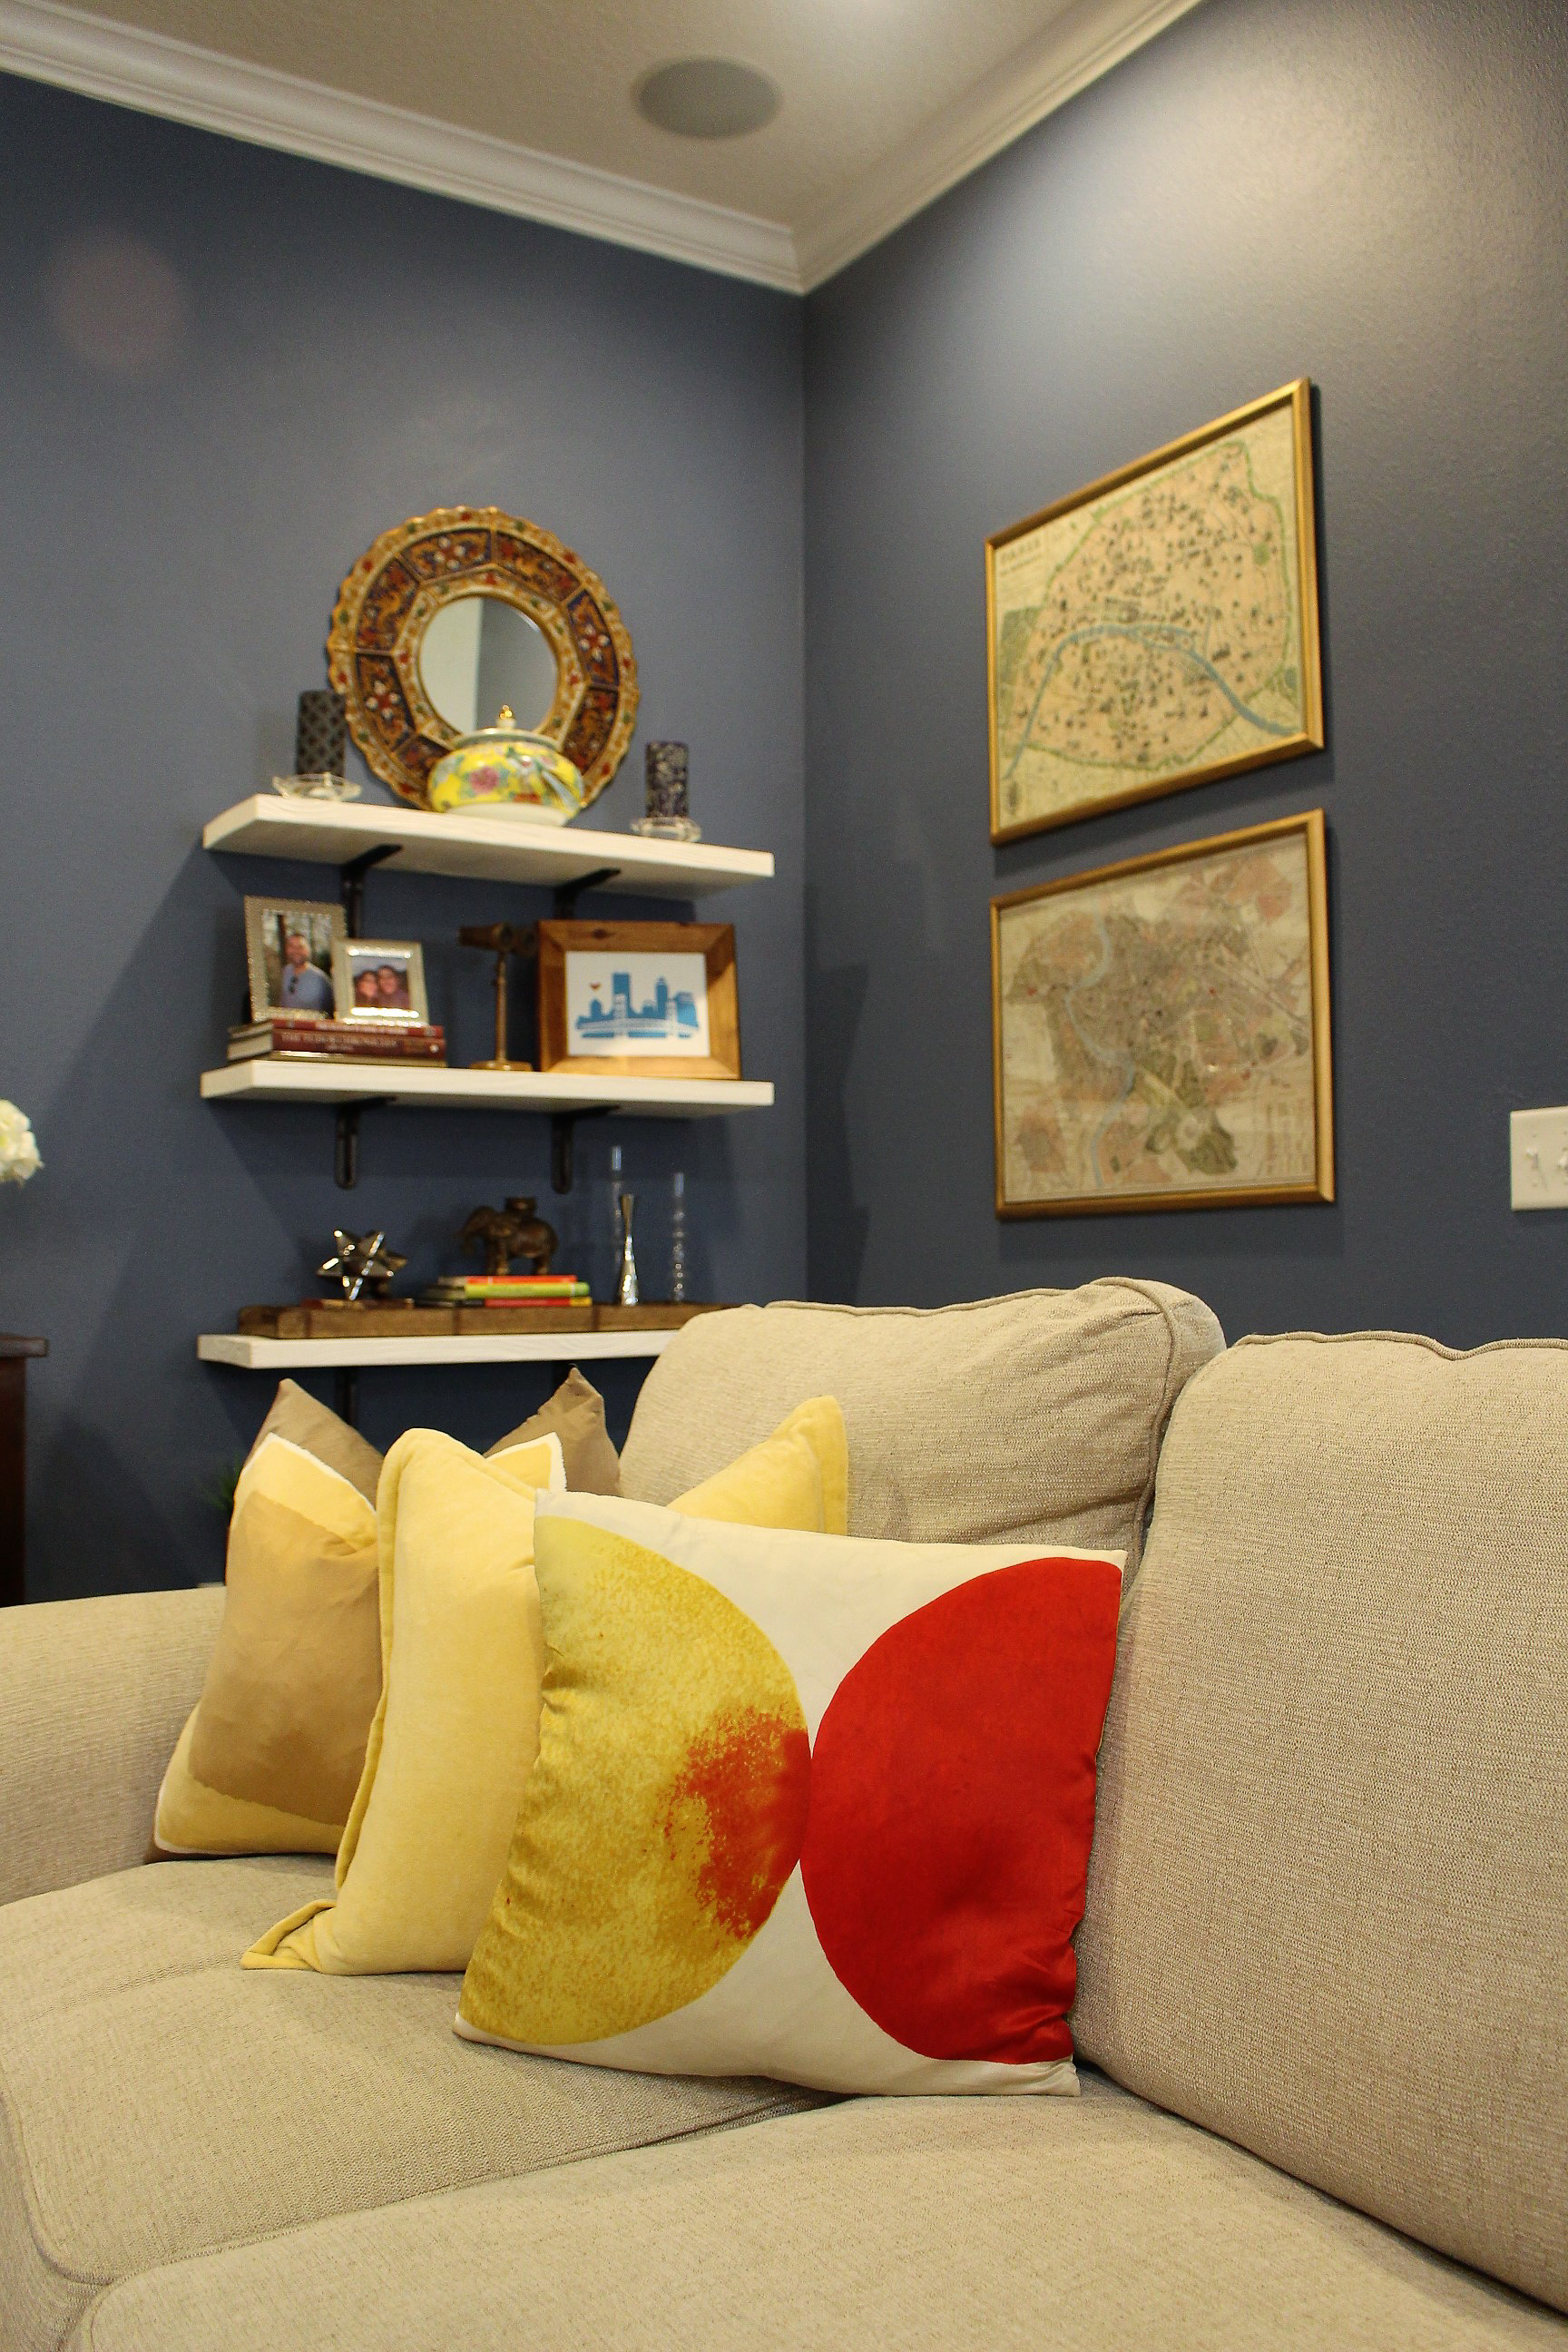 Selecting big ticket items for the room first will help you narrow down your color choices.